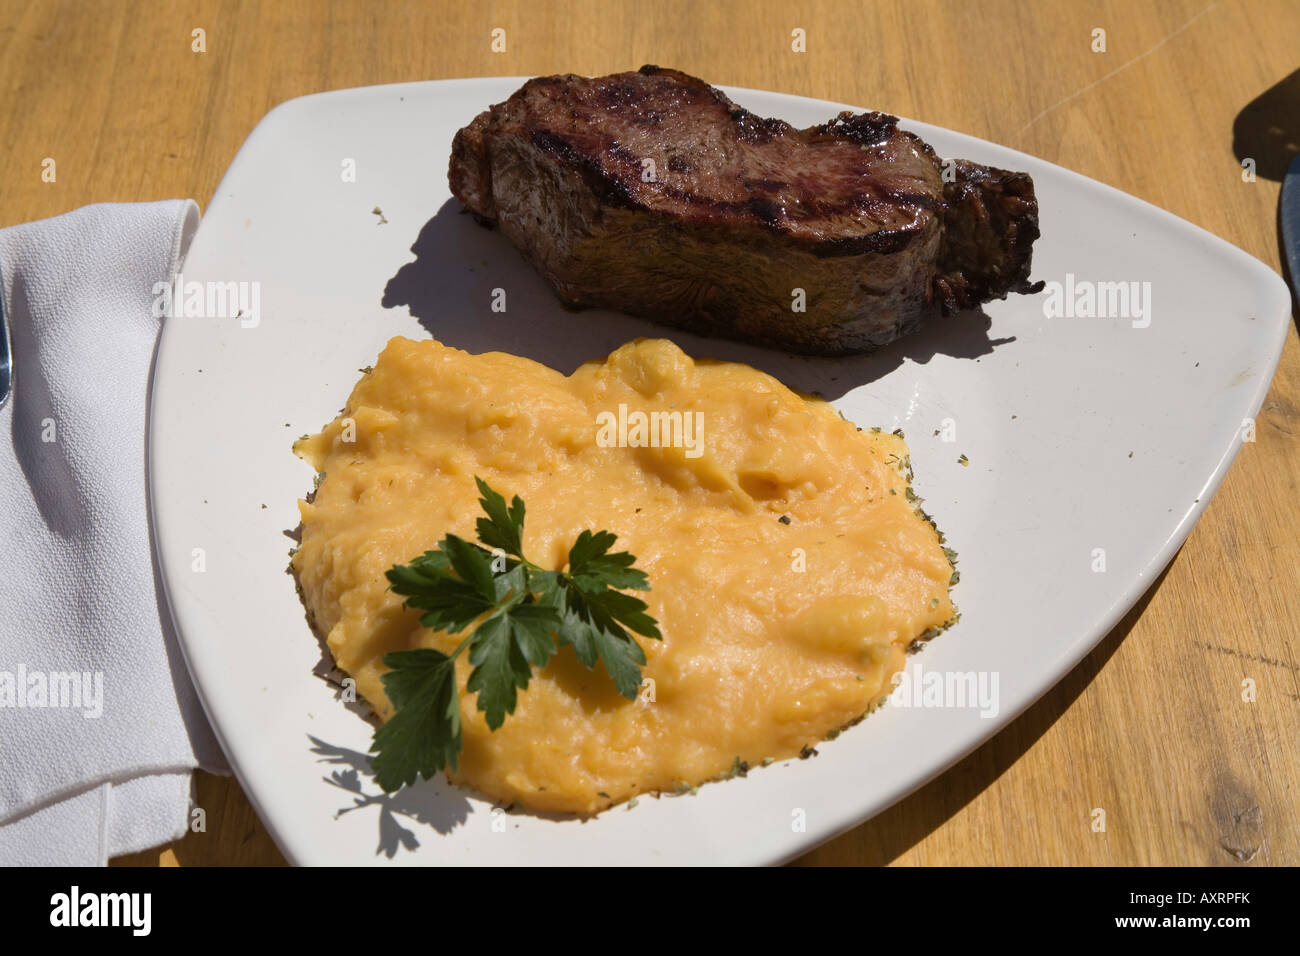 Steak on plate, half portion, ready to eat - Stock Image